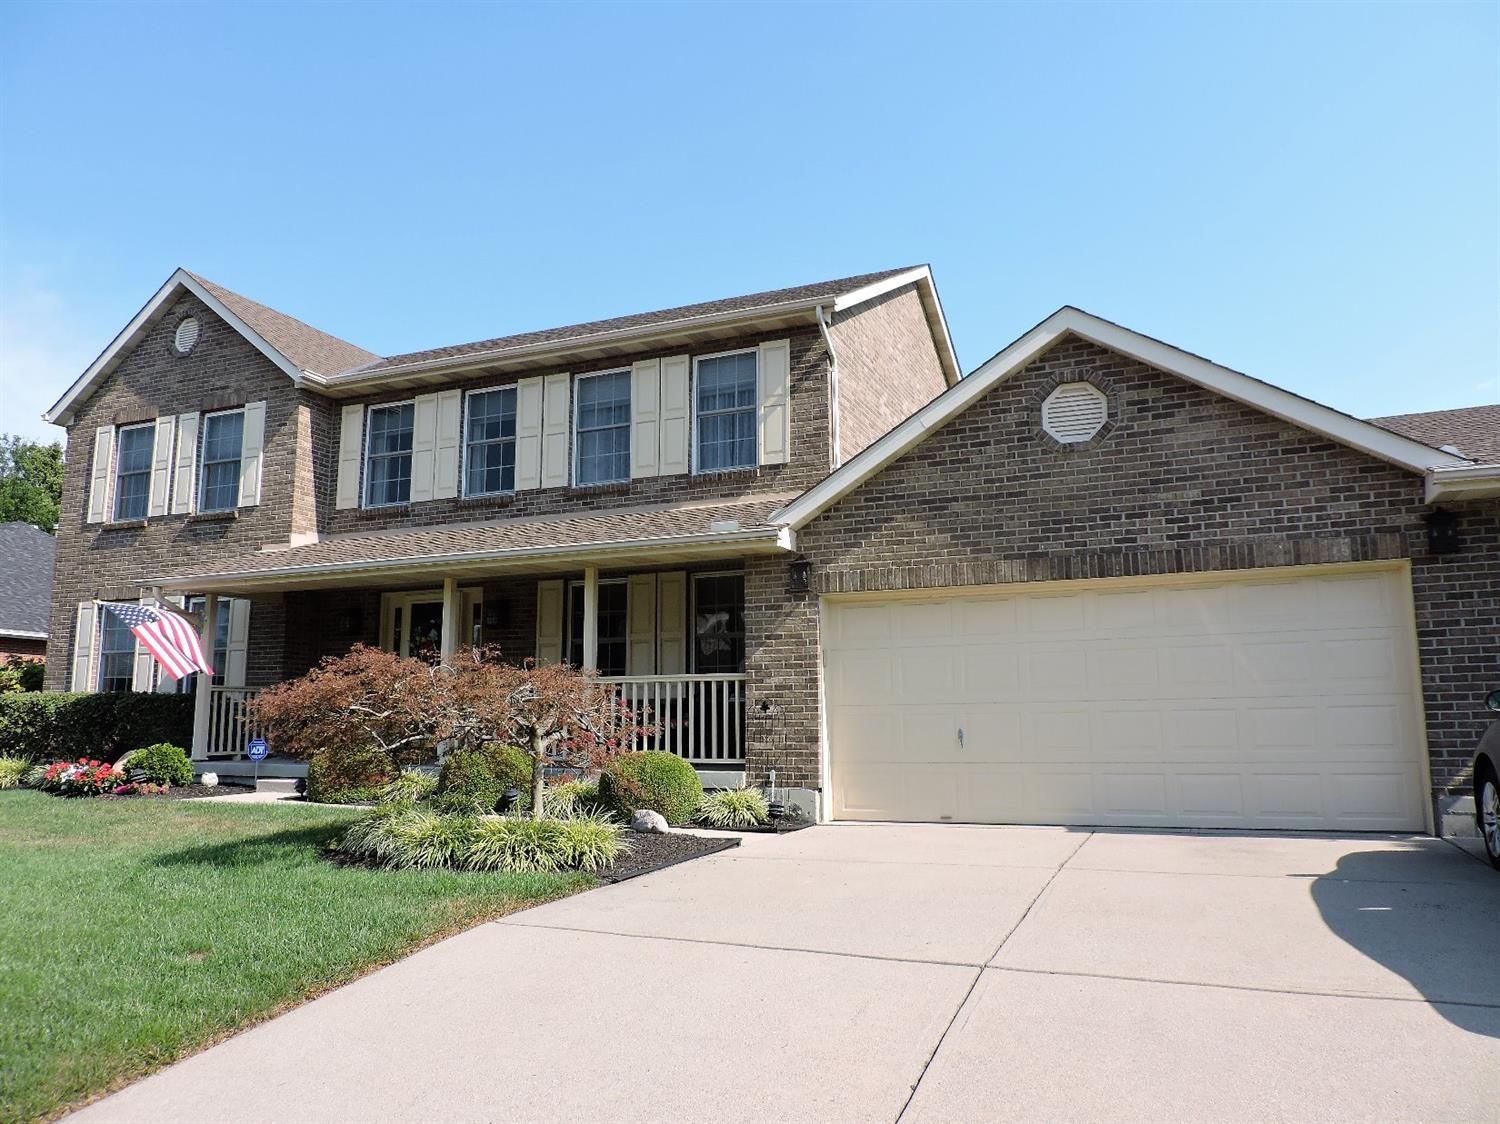 2370 Clara Bea Ln Fairfield, OH